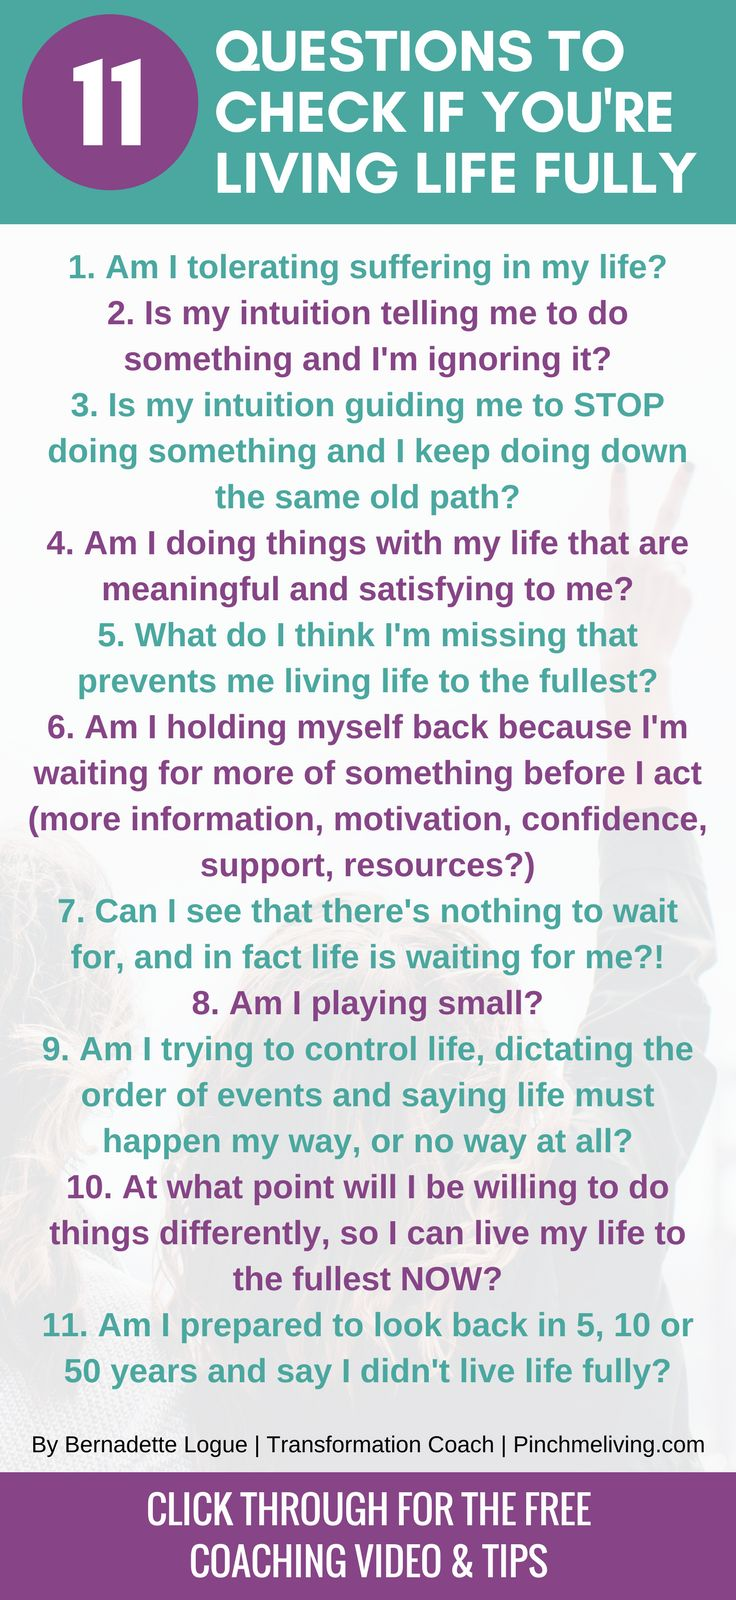 Are you living your life to the fullest? Or are you waiting for something? Use these 11 questions to check yourself, PLUS click through for the full blog, free coaching video and tips to start living your fullest life right now. https://www.thedailypositive.com/live-life-to-the-fullest/